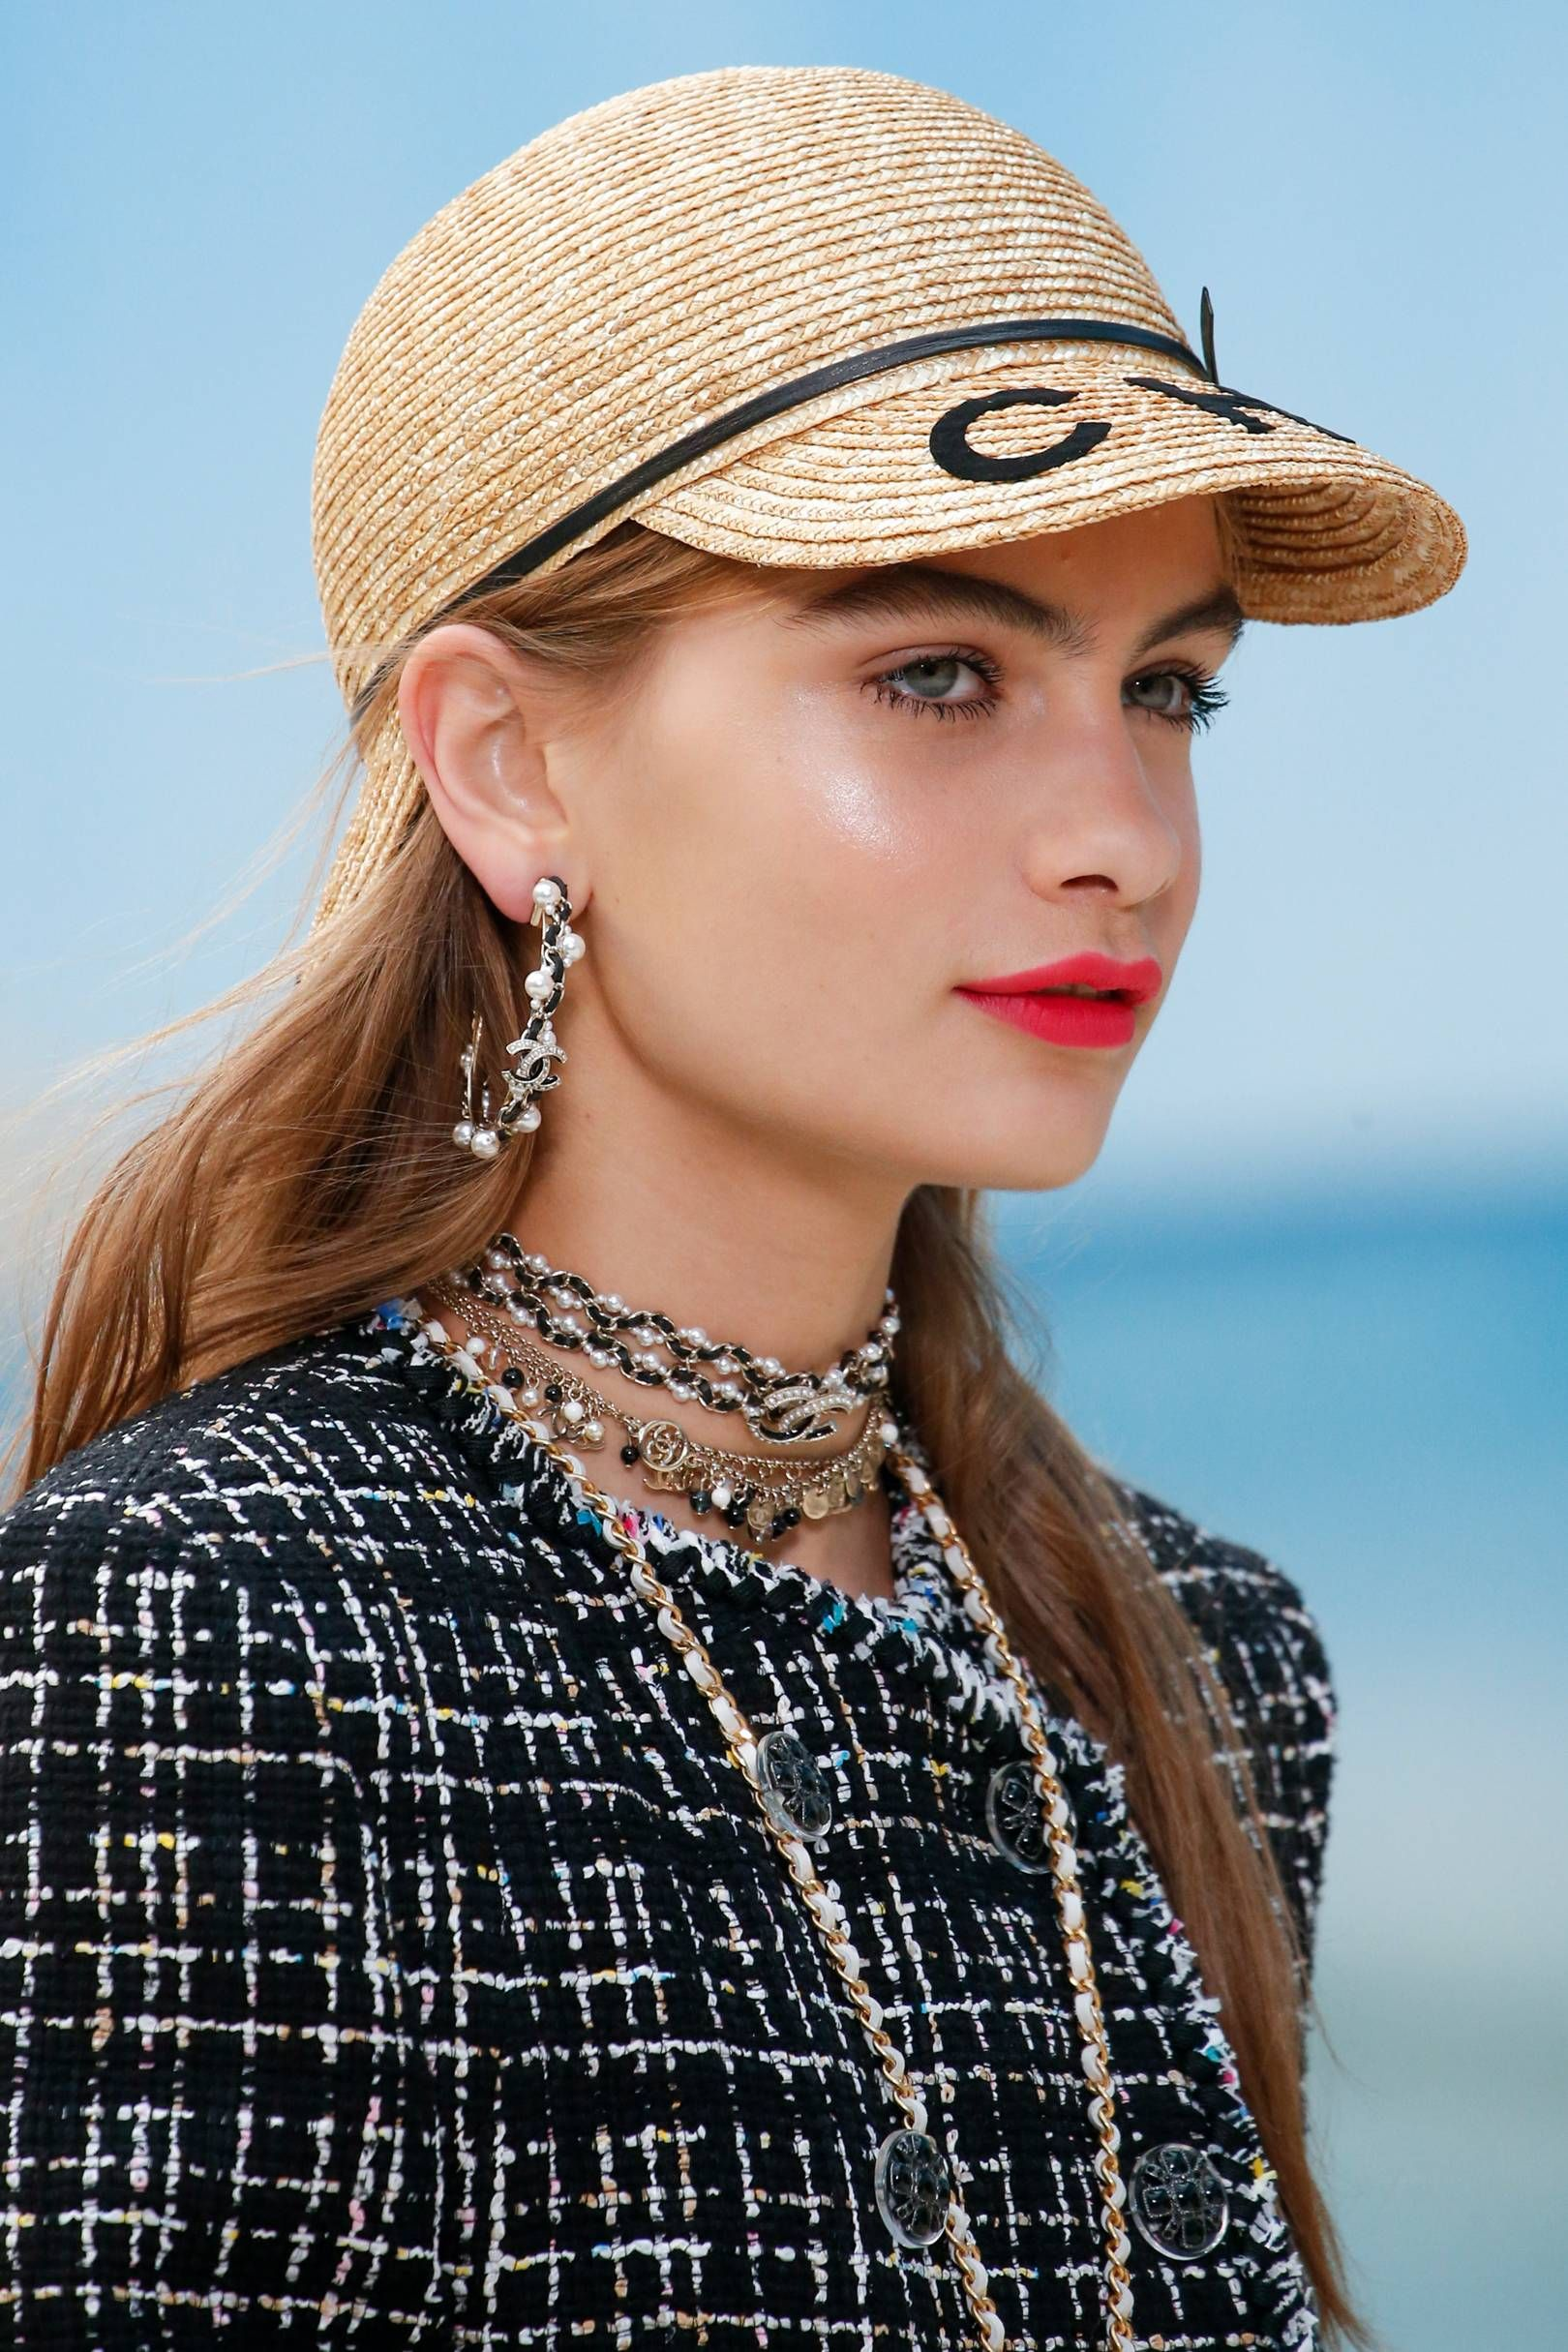 b62ccc28 Couture Accessories, Trendy Accessories, Neck Accessories, Fashion  Accessories, Summer Hats, Chanel